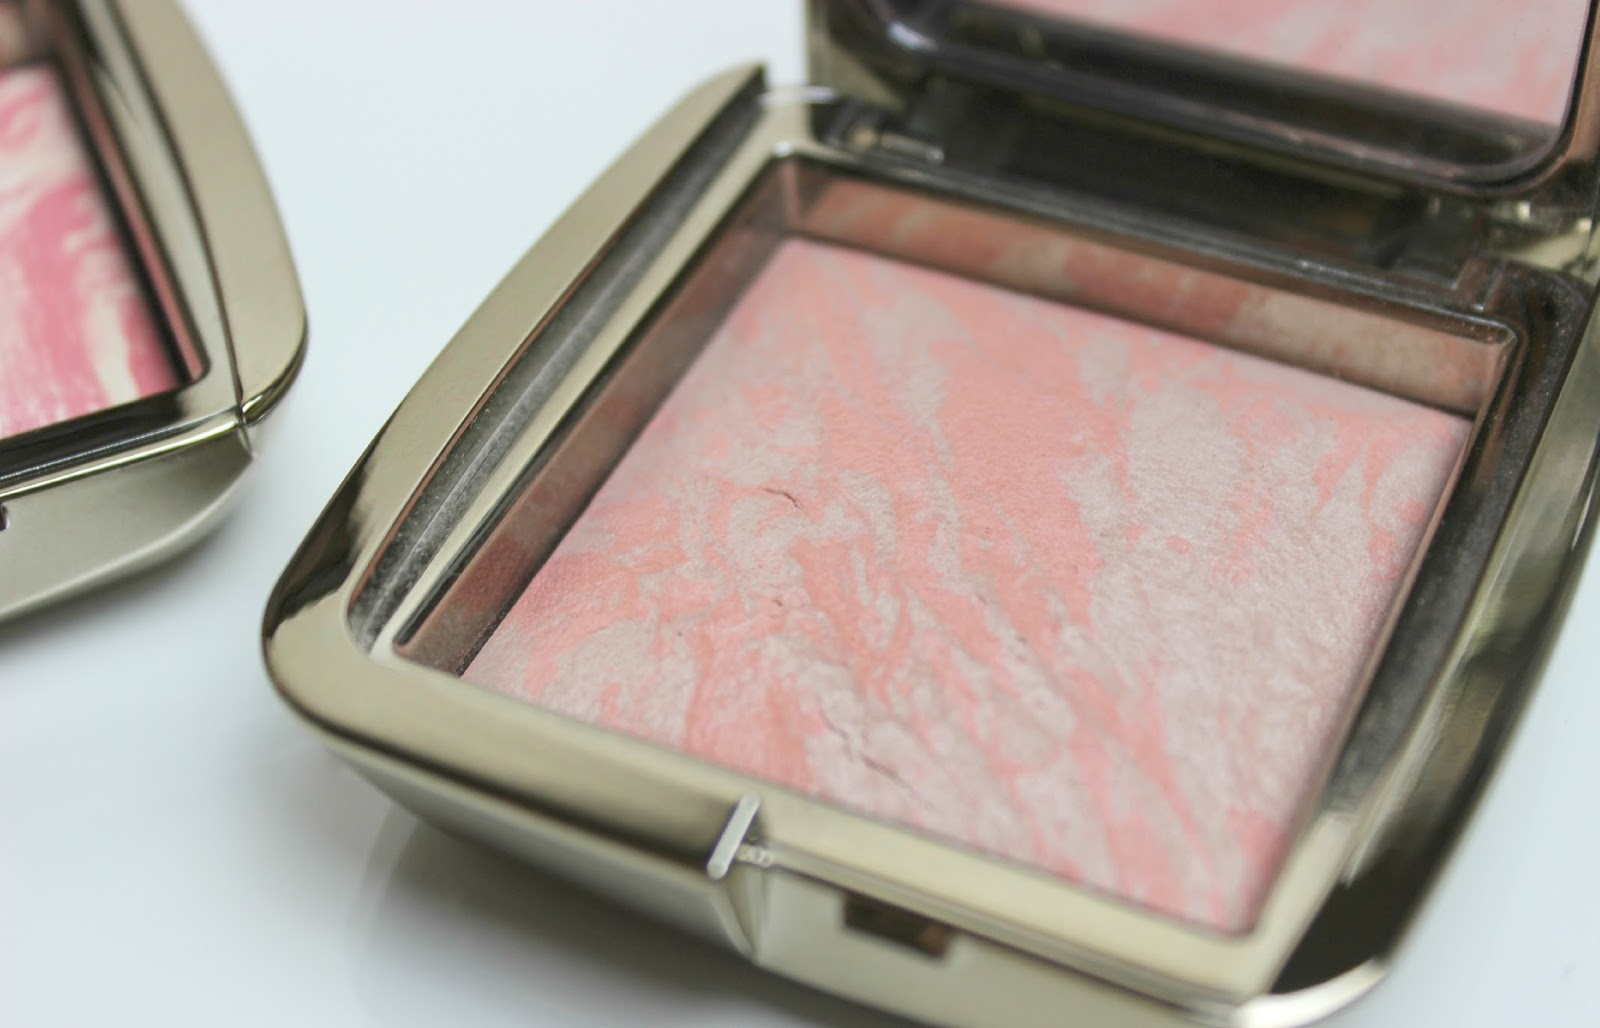 A picture of Hourglass Ambient Lighting Blush in Dim Infusion